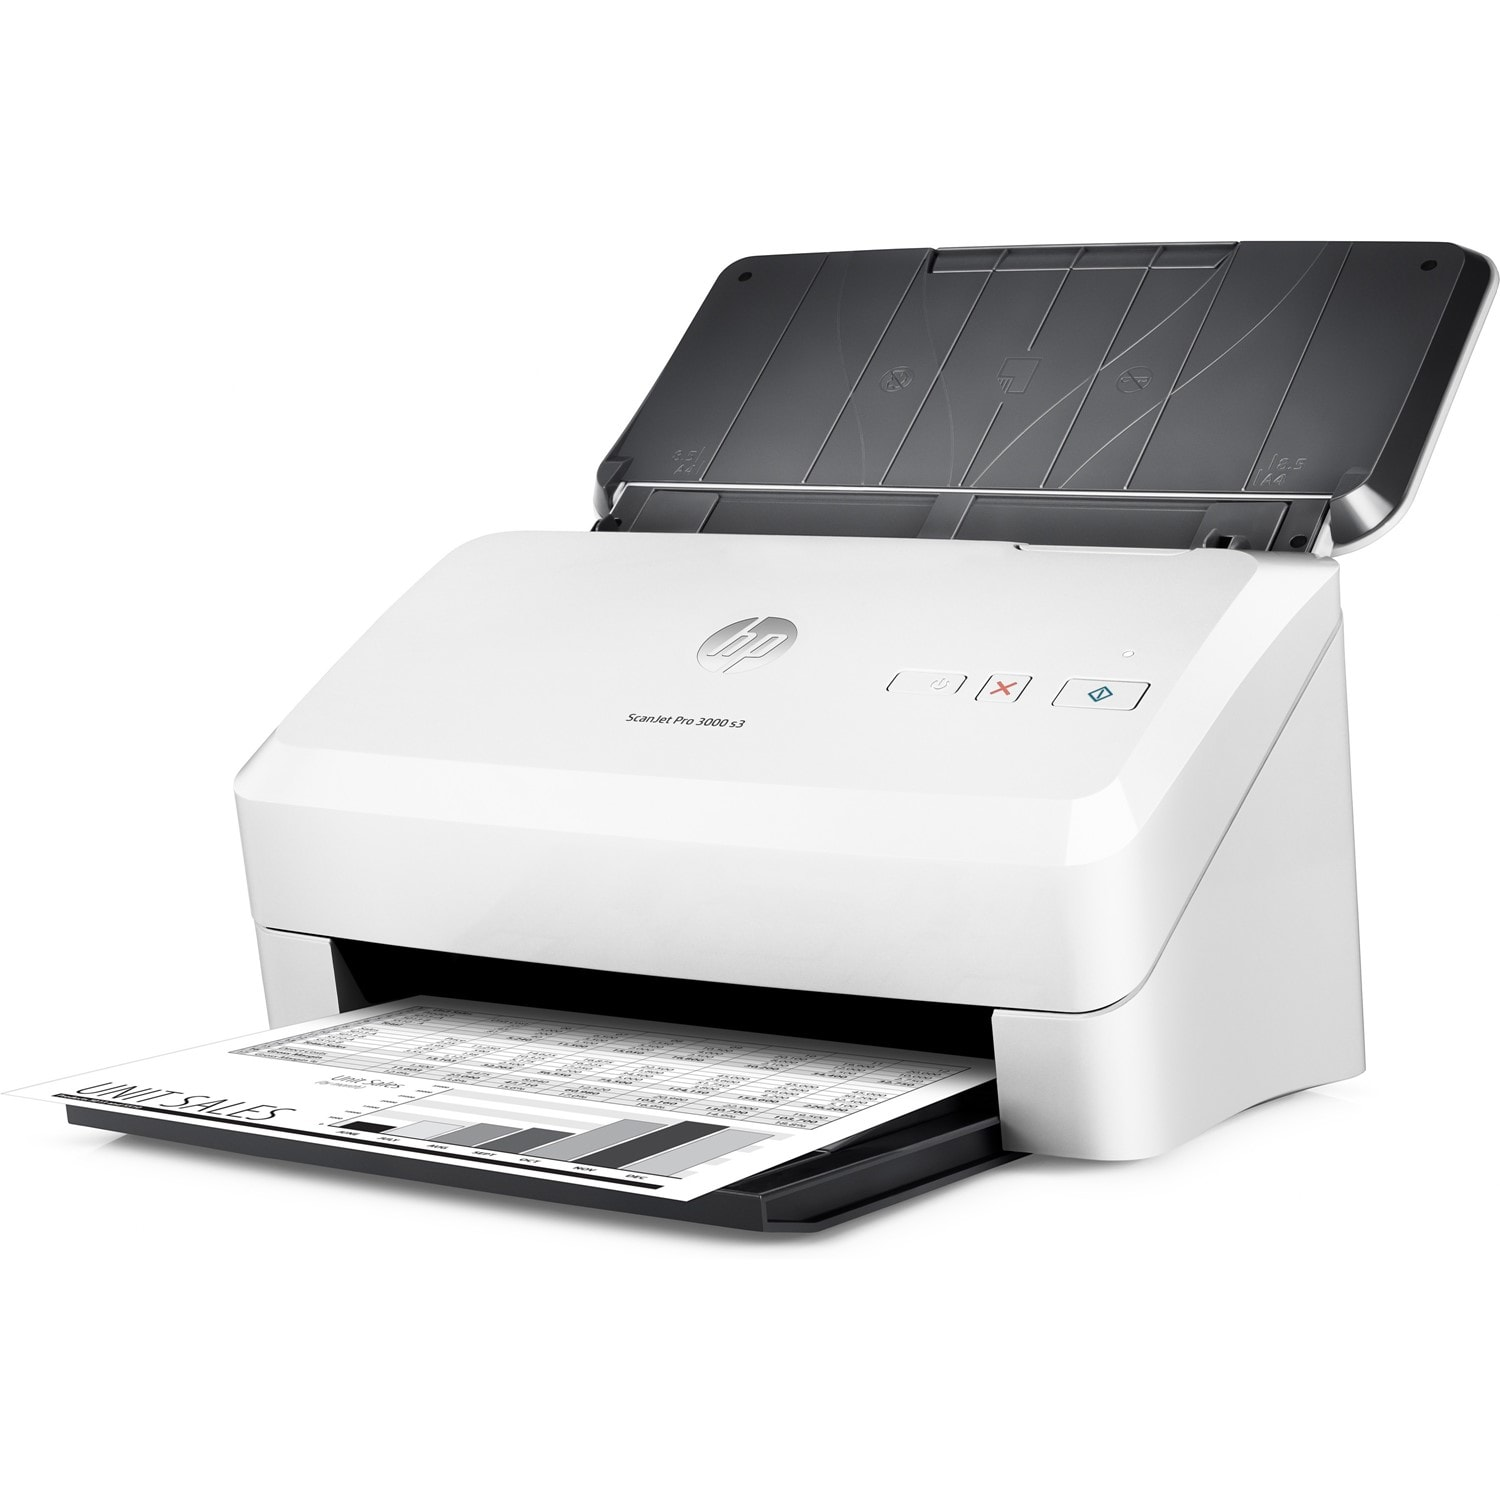 buy hp scanjet pro 3000 s3 sheetfed scanner 600 dpi optical rh counterparts express HP Scanjet 3000 Review HP Scanjet 3000 Replacement Parts